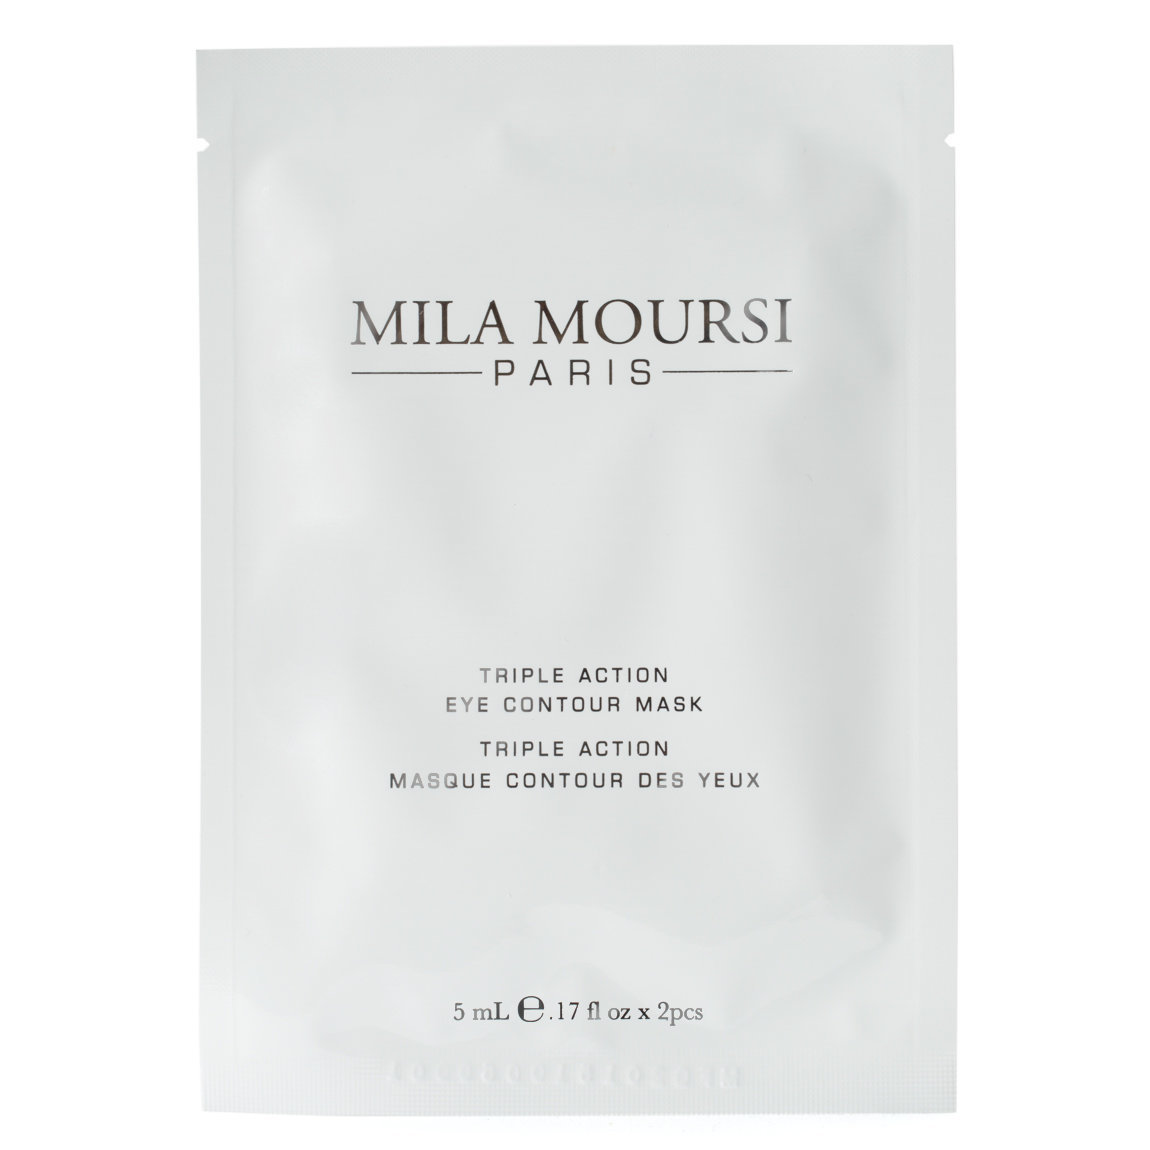 Mila Moursi Triple Action Eye Contour Mask product swatch.